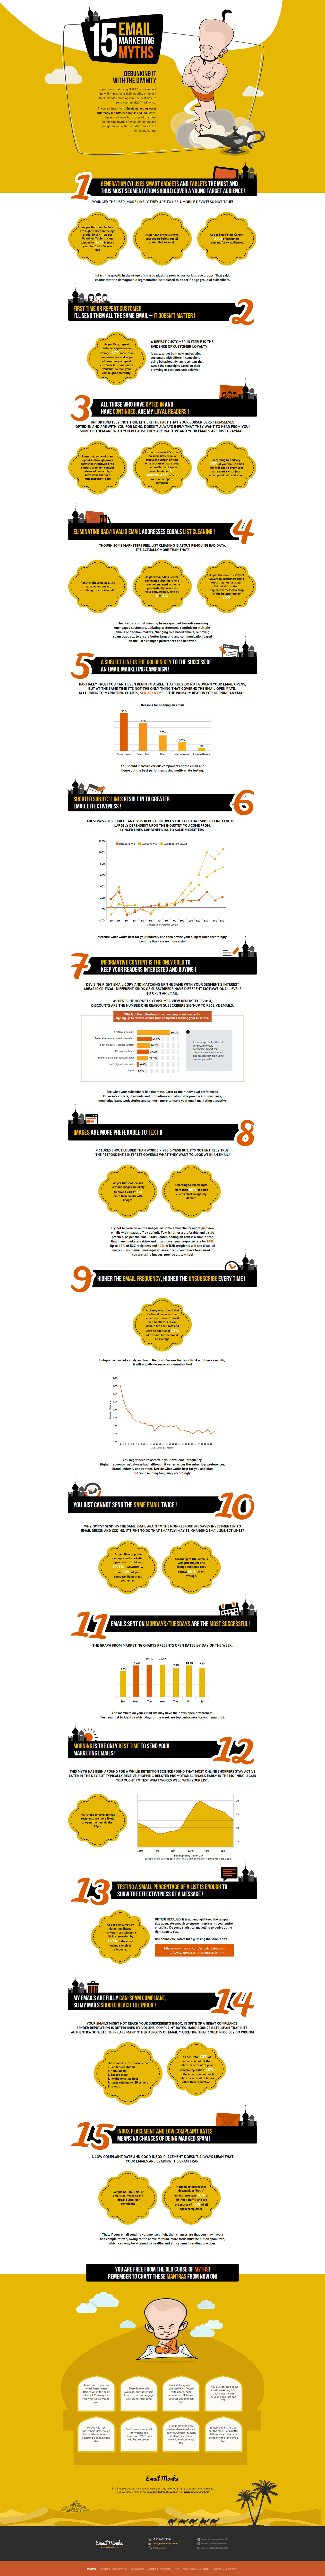 15-email-marketing-myths-infographic